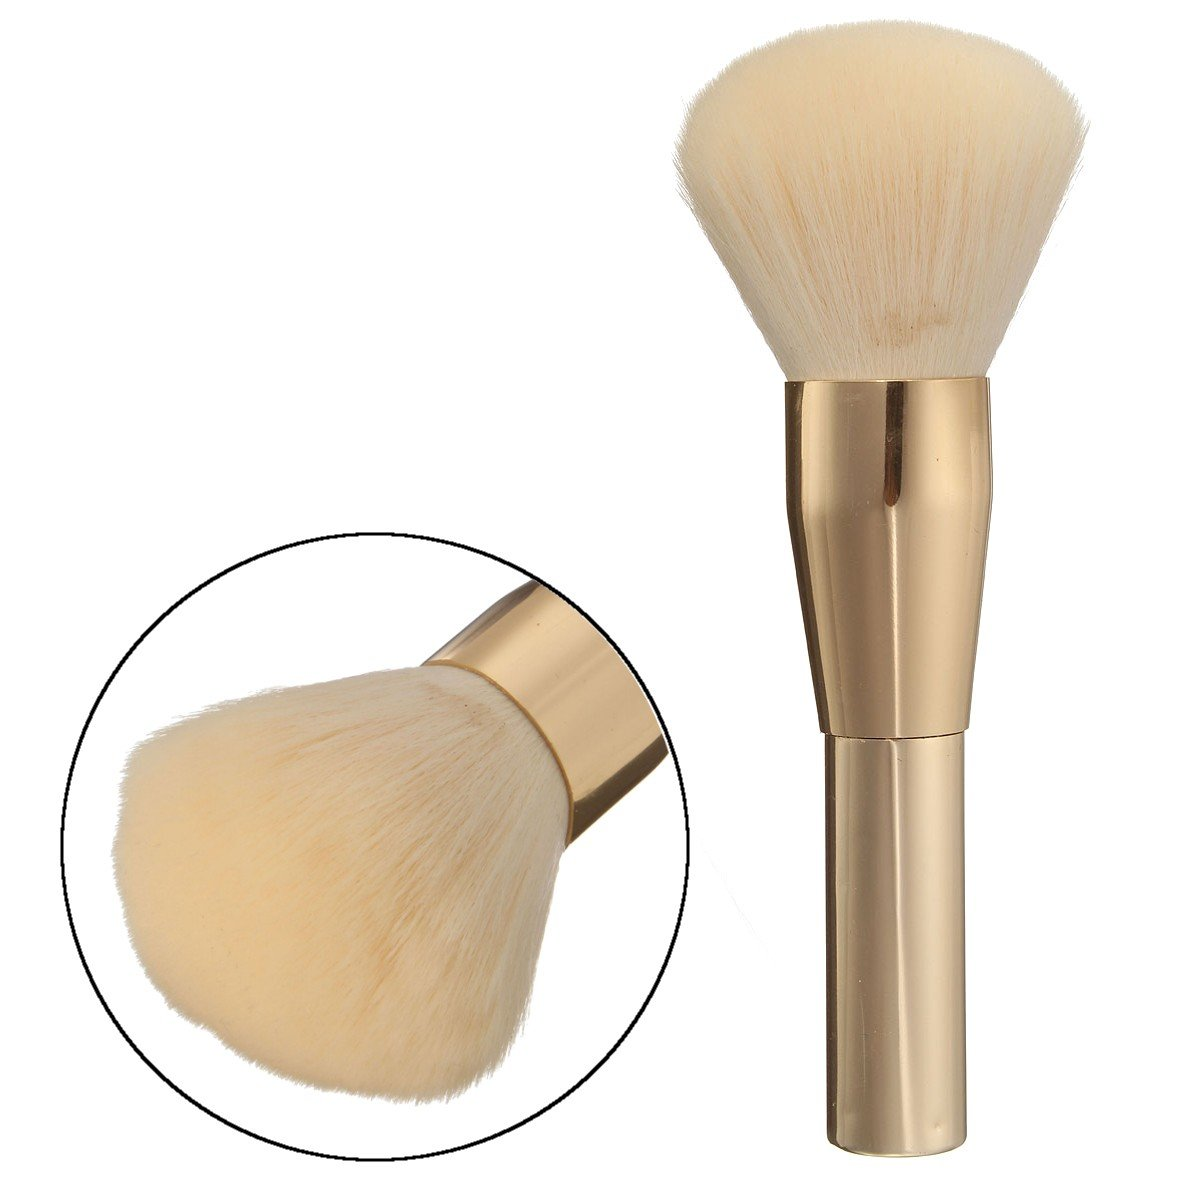 Soft Makeup Blush Brush Brushes Face Care Loose Powder Cosmetic Tool